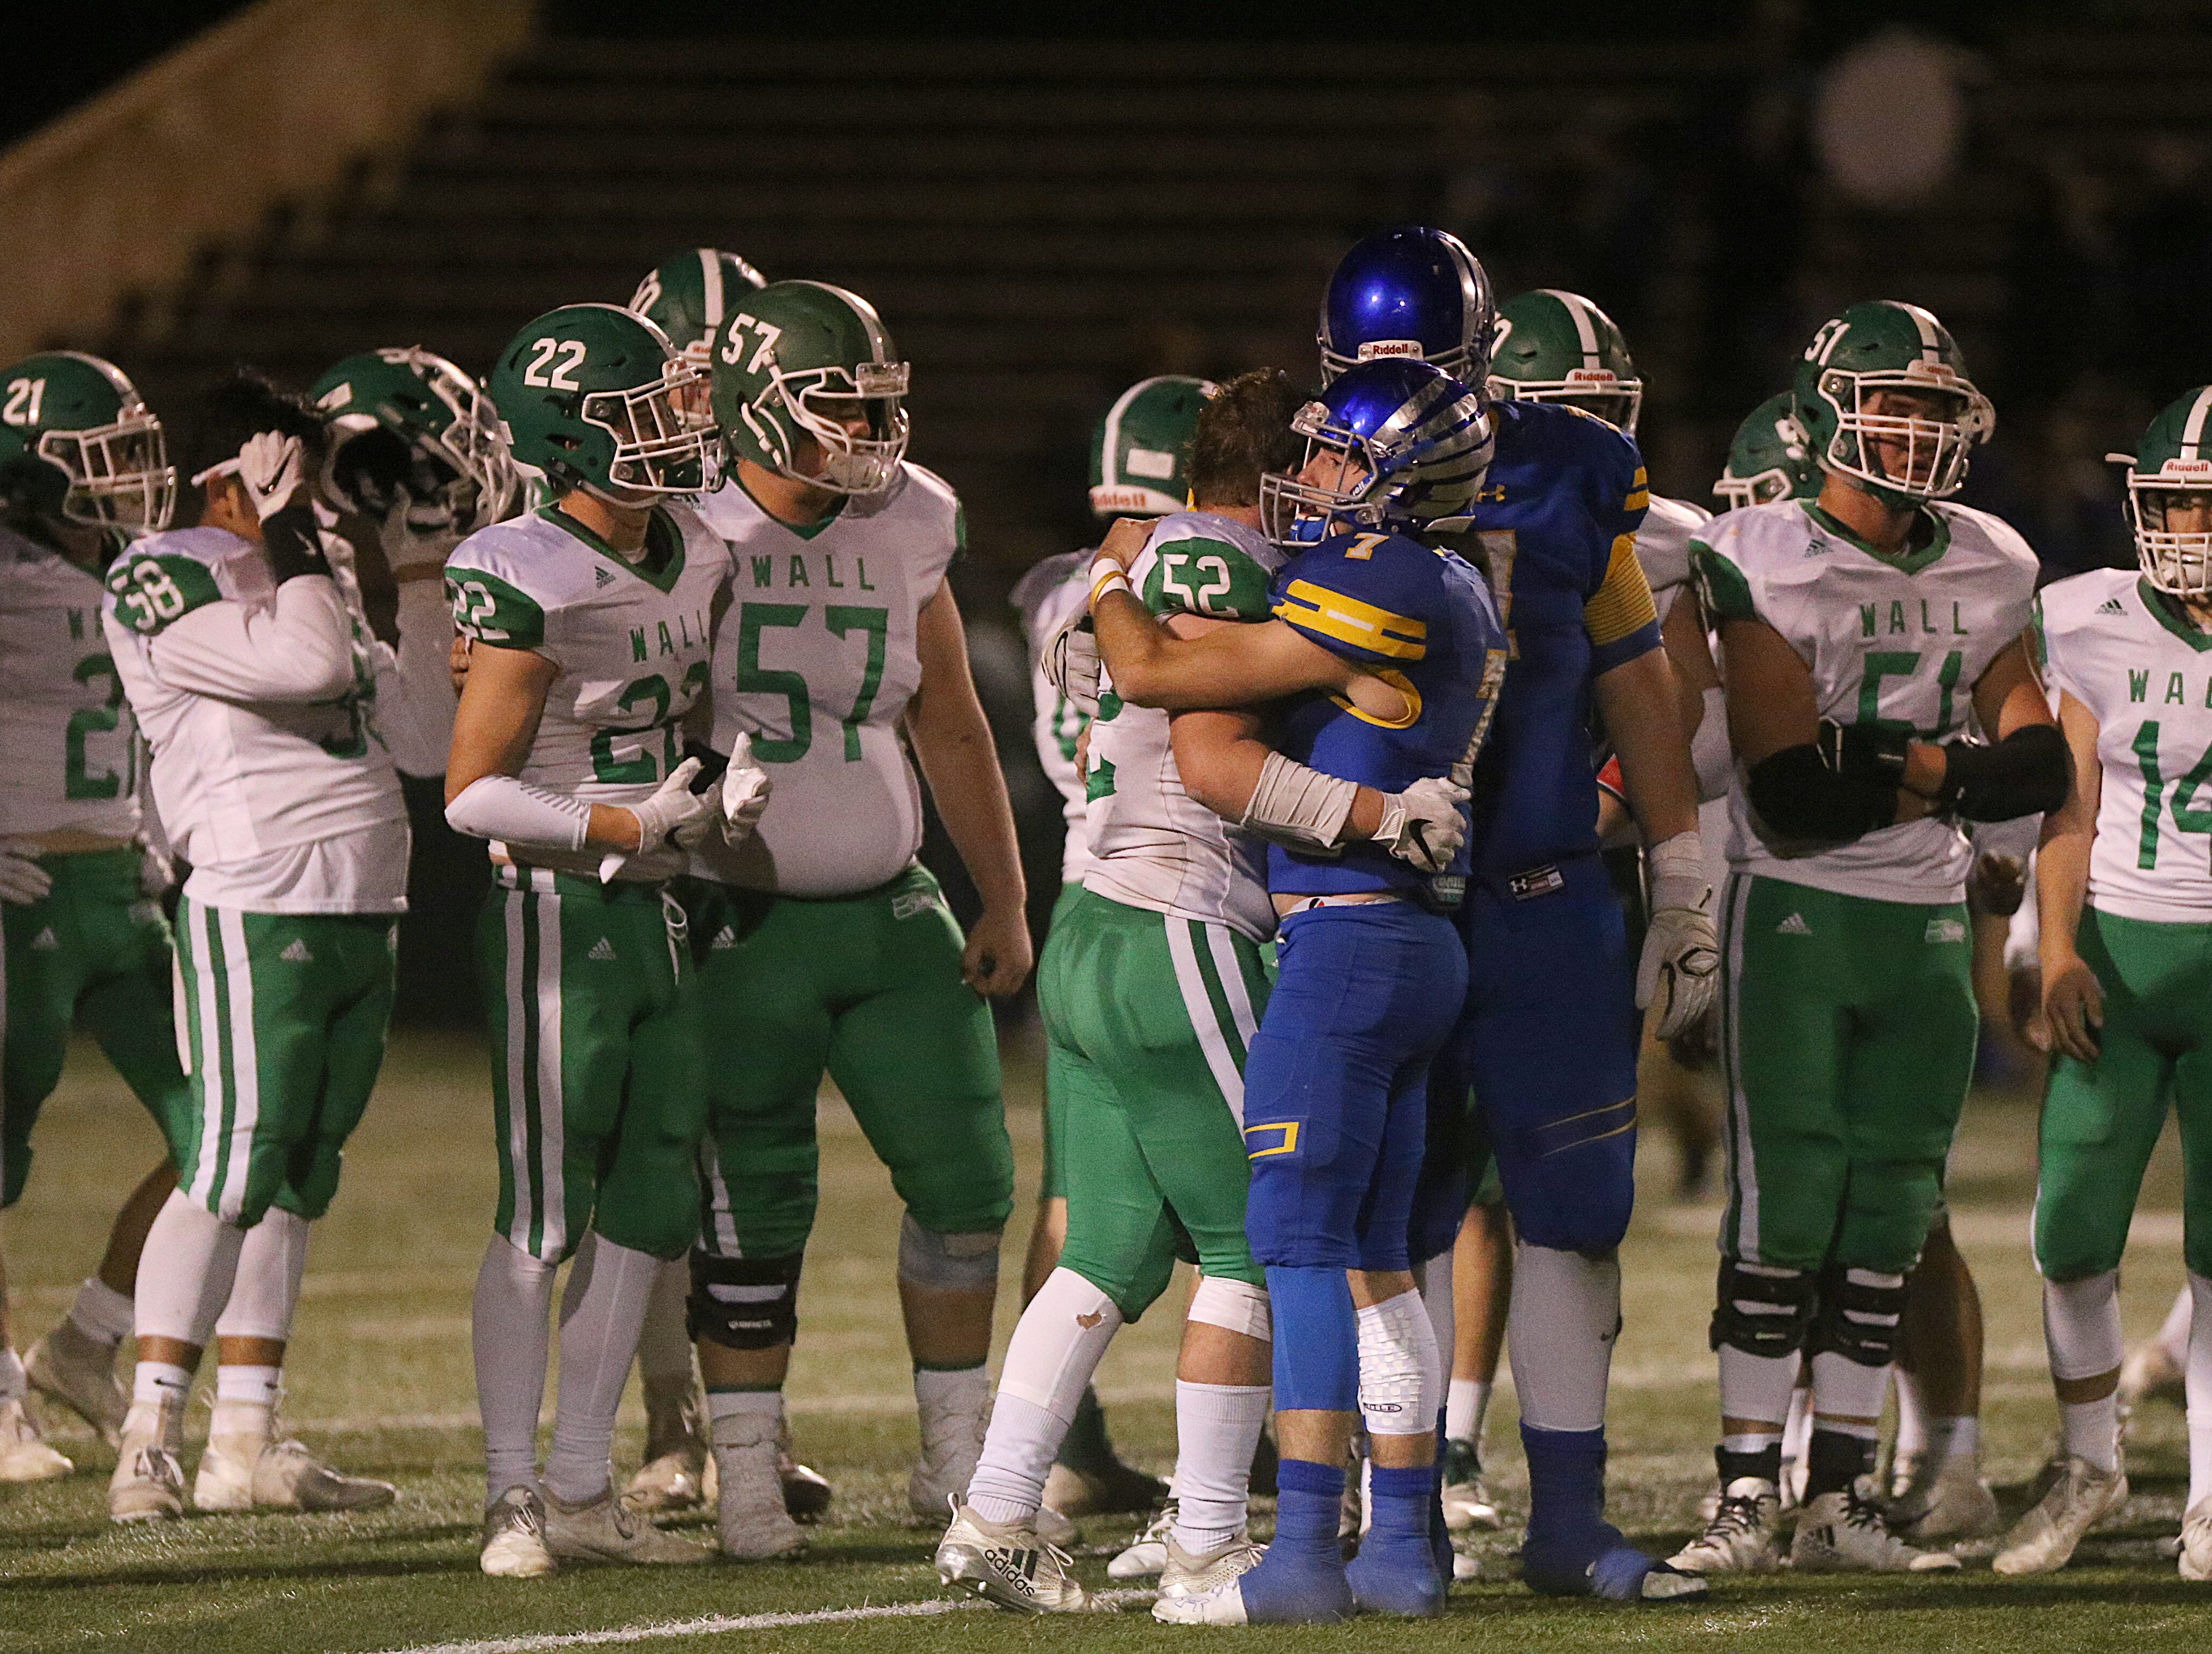 Wall and Brock players embrace after the game Friday, Nov. 30, 2018, at Shotwell Stadium in Abilene. Wall lost 13 to 35.